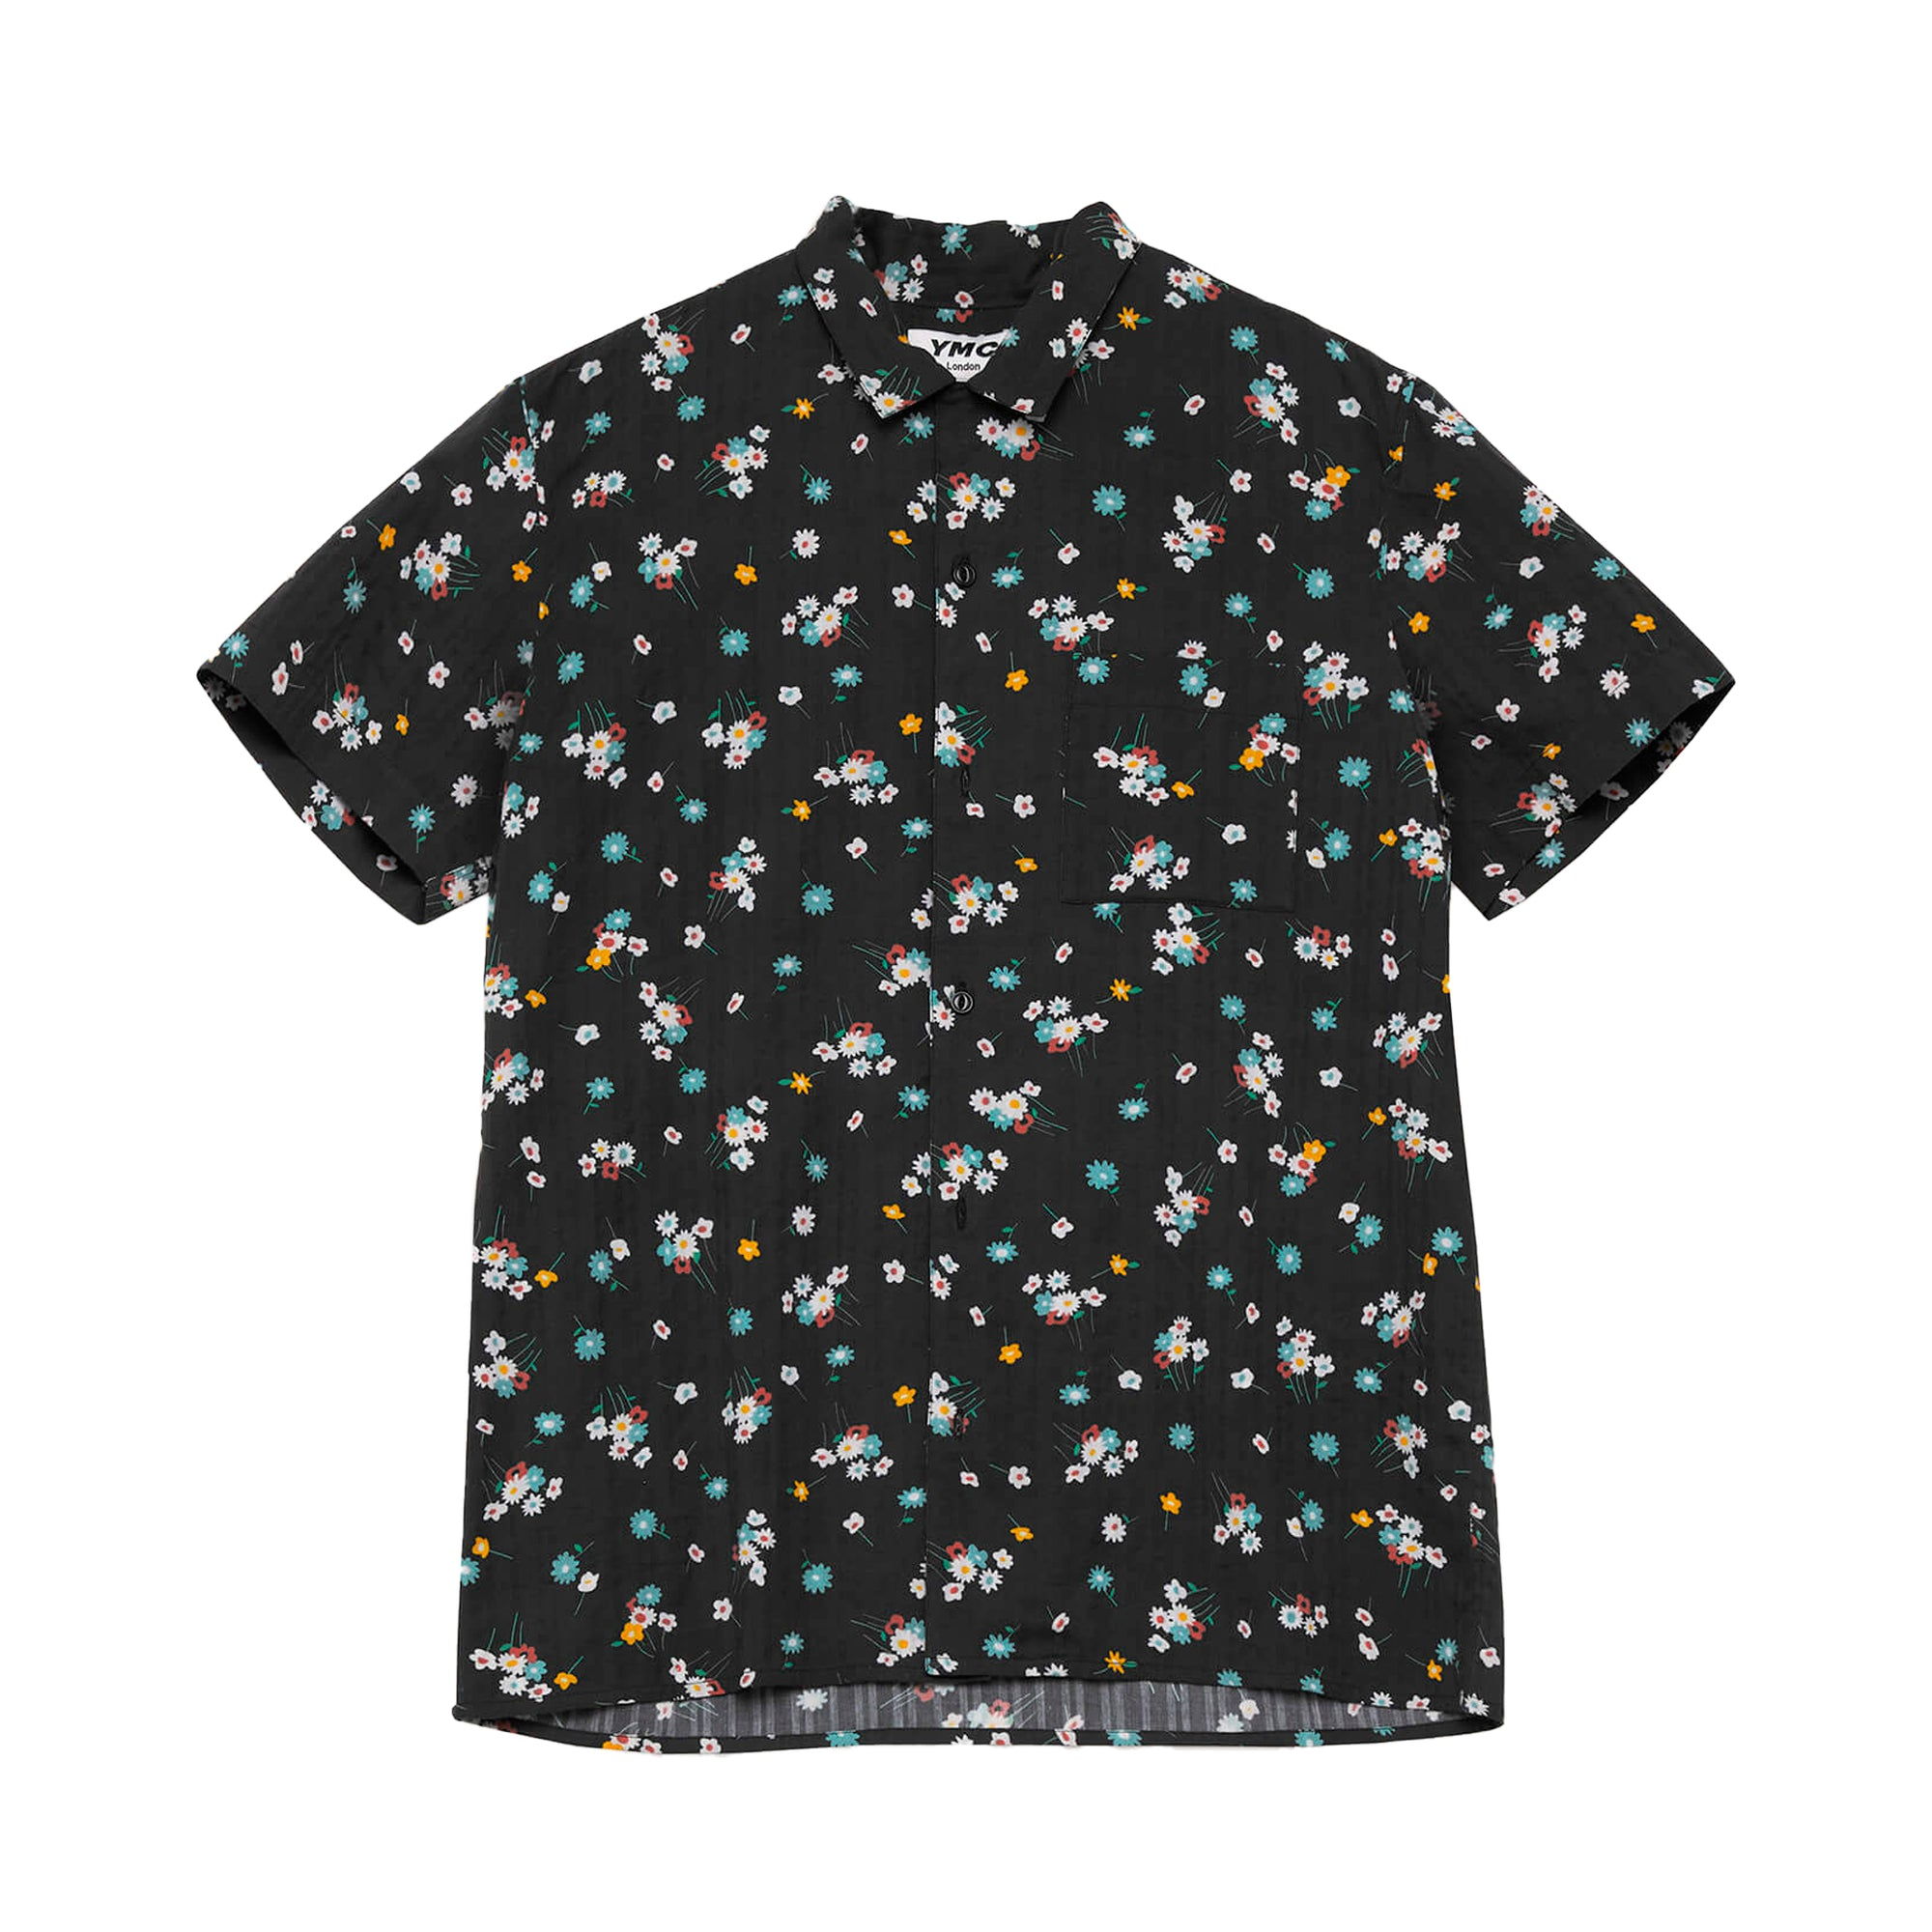 YMC Malick Floral Seersucker Shirt: Black - The Union Project